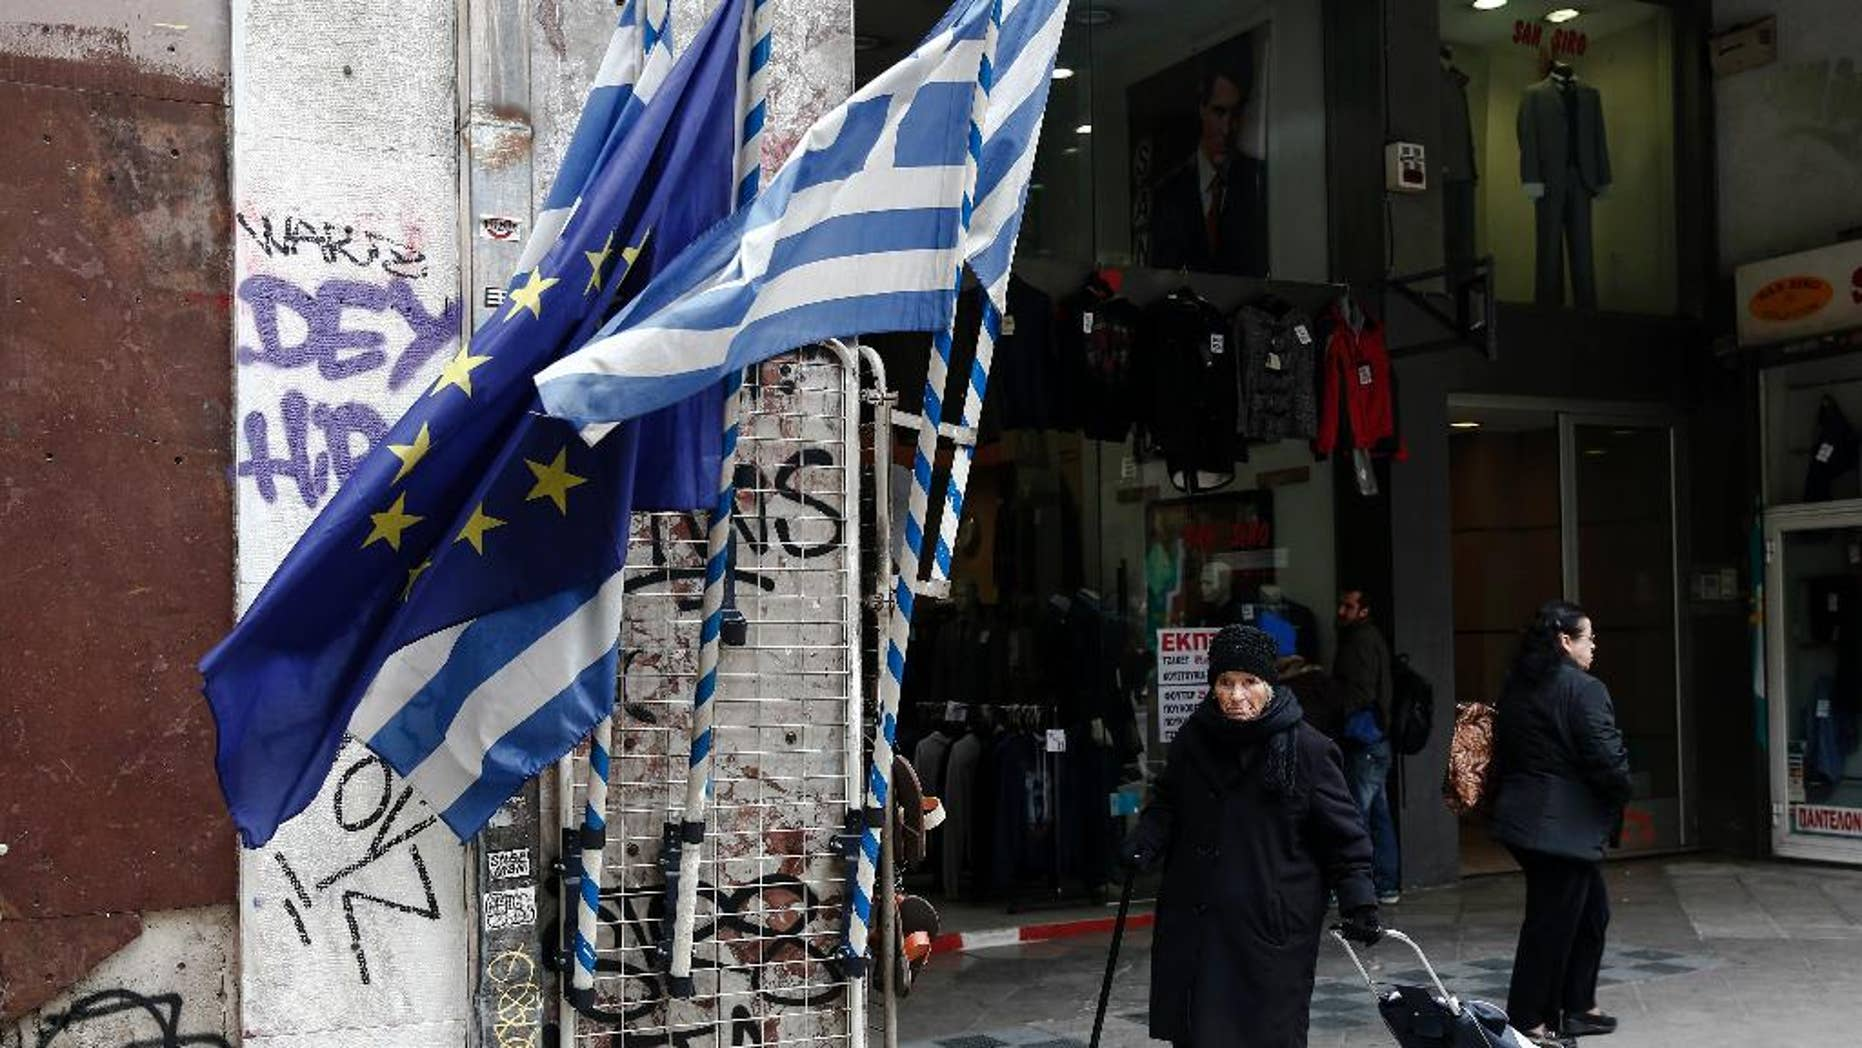 A woman pulls a shopping trolley next to a Greek and an EU flags at a main street of Athens, Thursday, Jan. 26, 2017. Greece's prime minister on Wednesday marked two years in office, as talks with bailout lenders remain at an impasse. (AP Photo/Yorgos Karahalis)